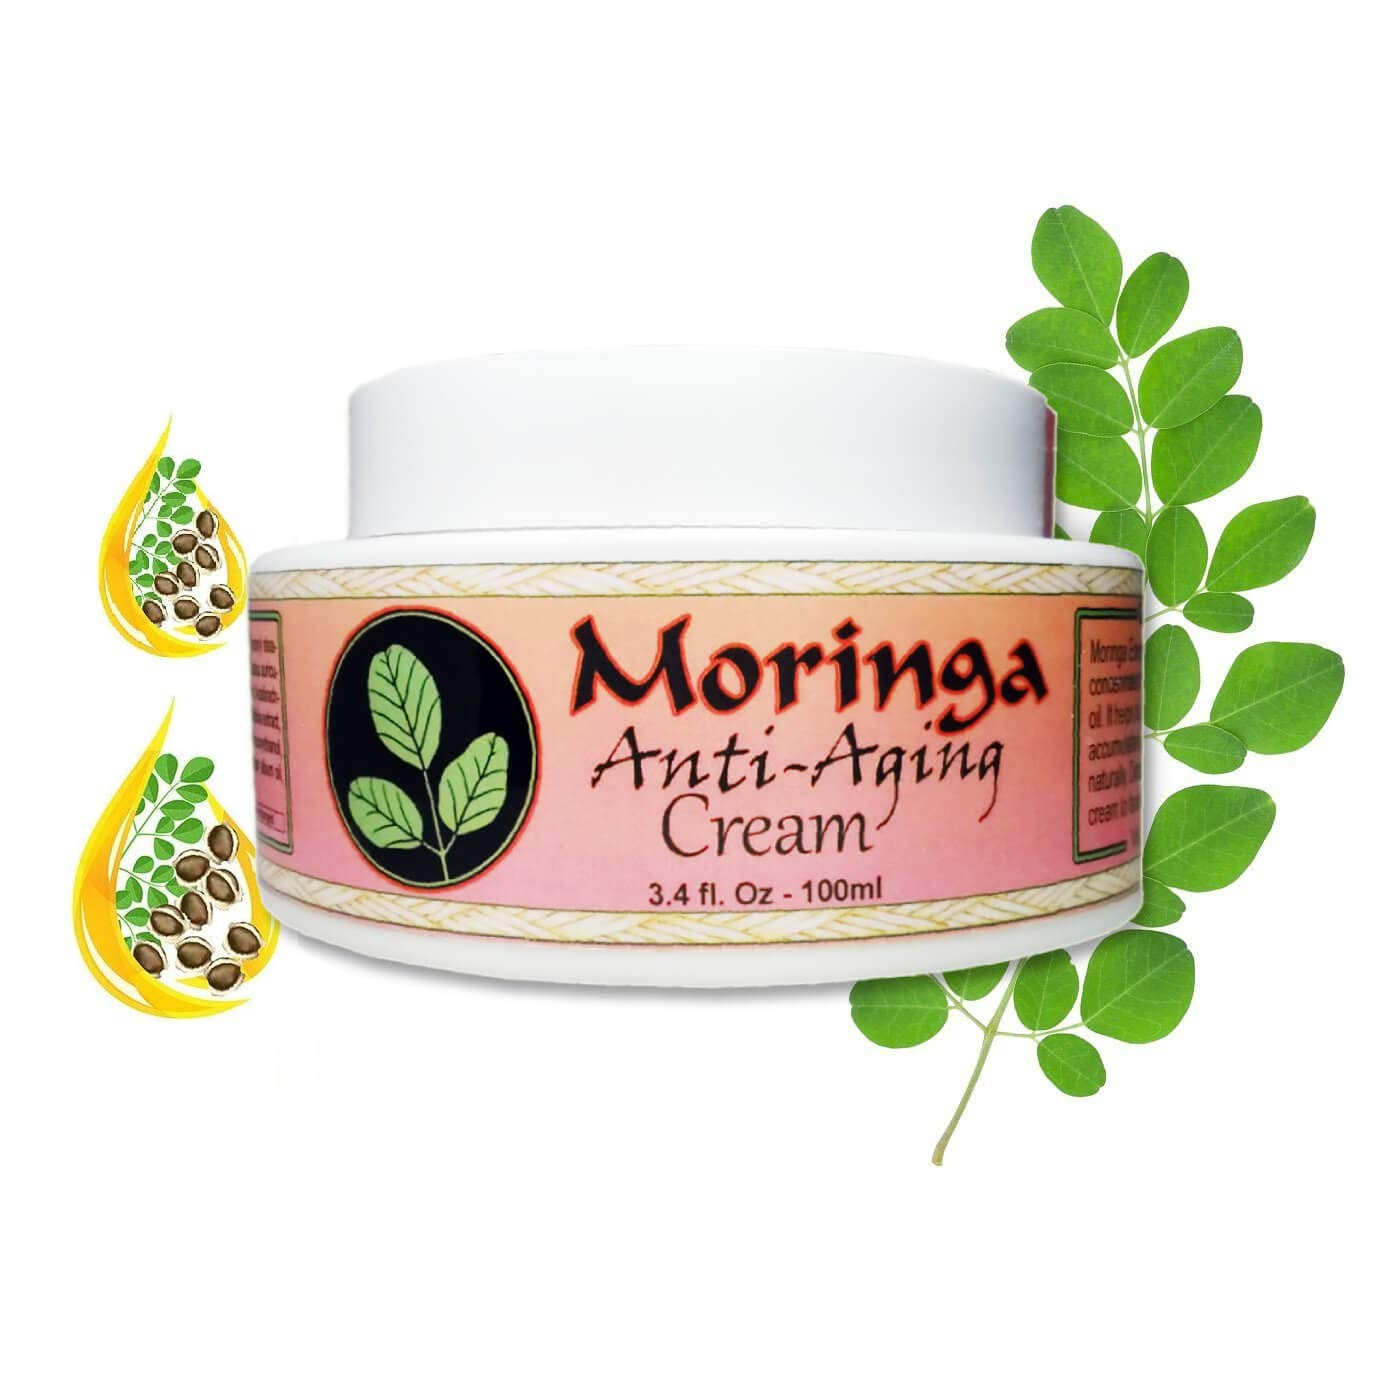 Moringa Anti Aging Cream 3.4 oz * Feel & Look Years Younger with 14 Powerful Ayurvedic Herbs Combined Together to Moisturize with Skin Loving Vitamins, Minerals & Antioxidants!